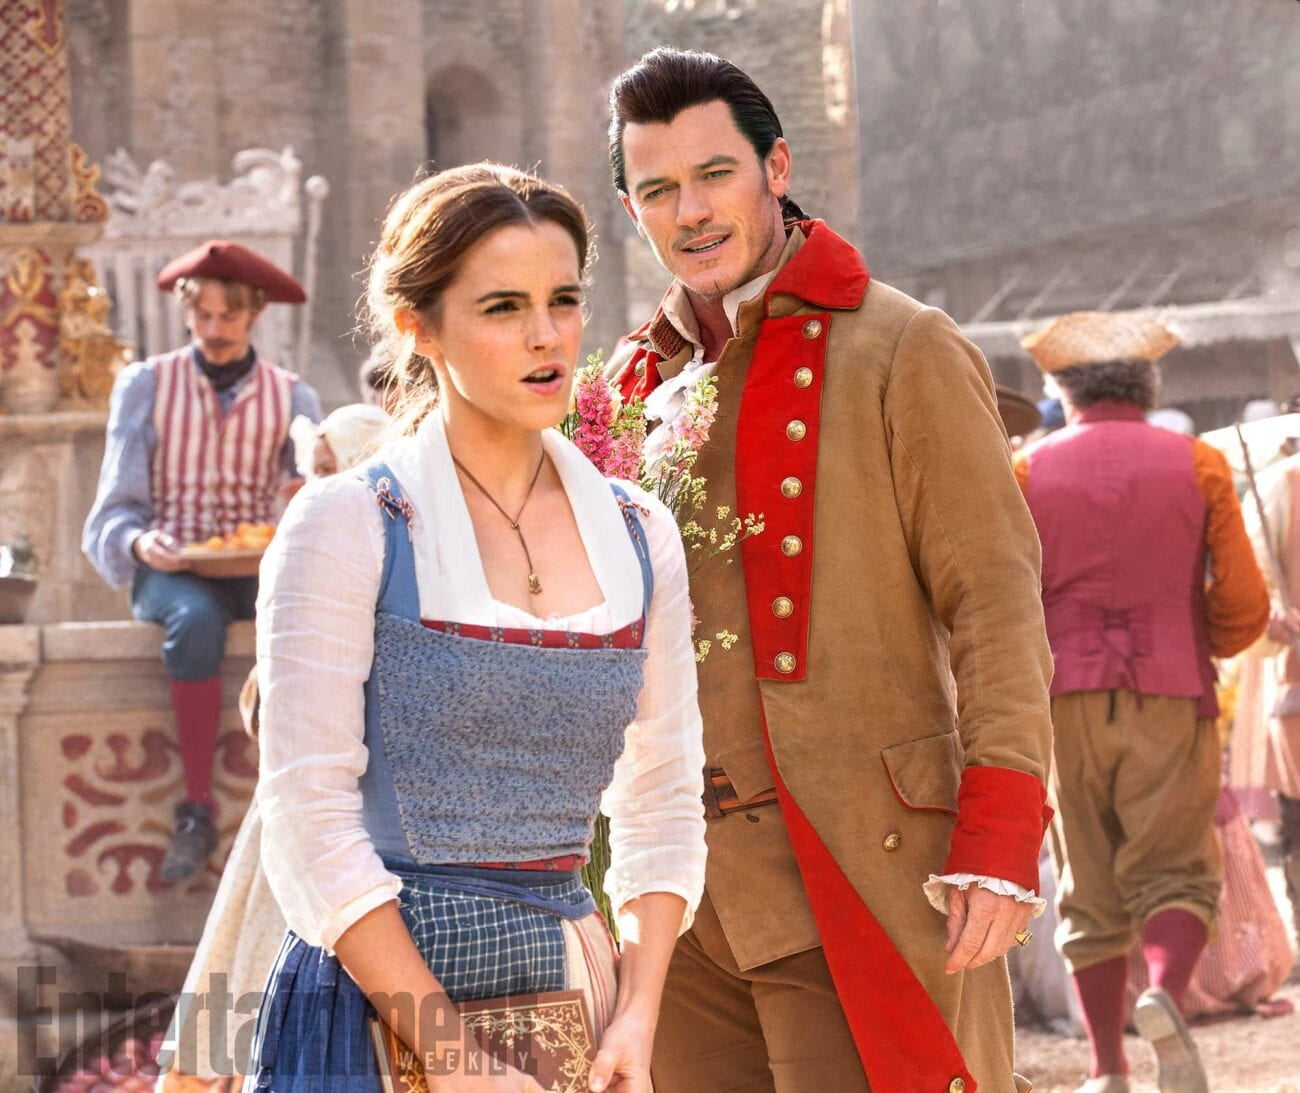 You know how 'Beauty and the Beast' ends, but do you know how it truly begins? Grab that magic mirror and learn all about Gaston & LeFou's past!